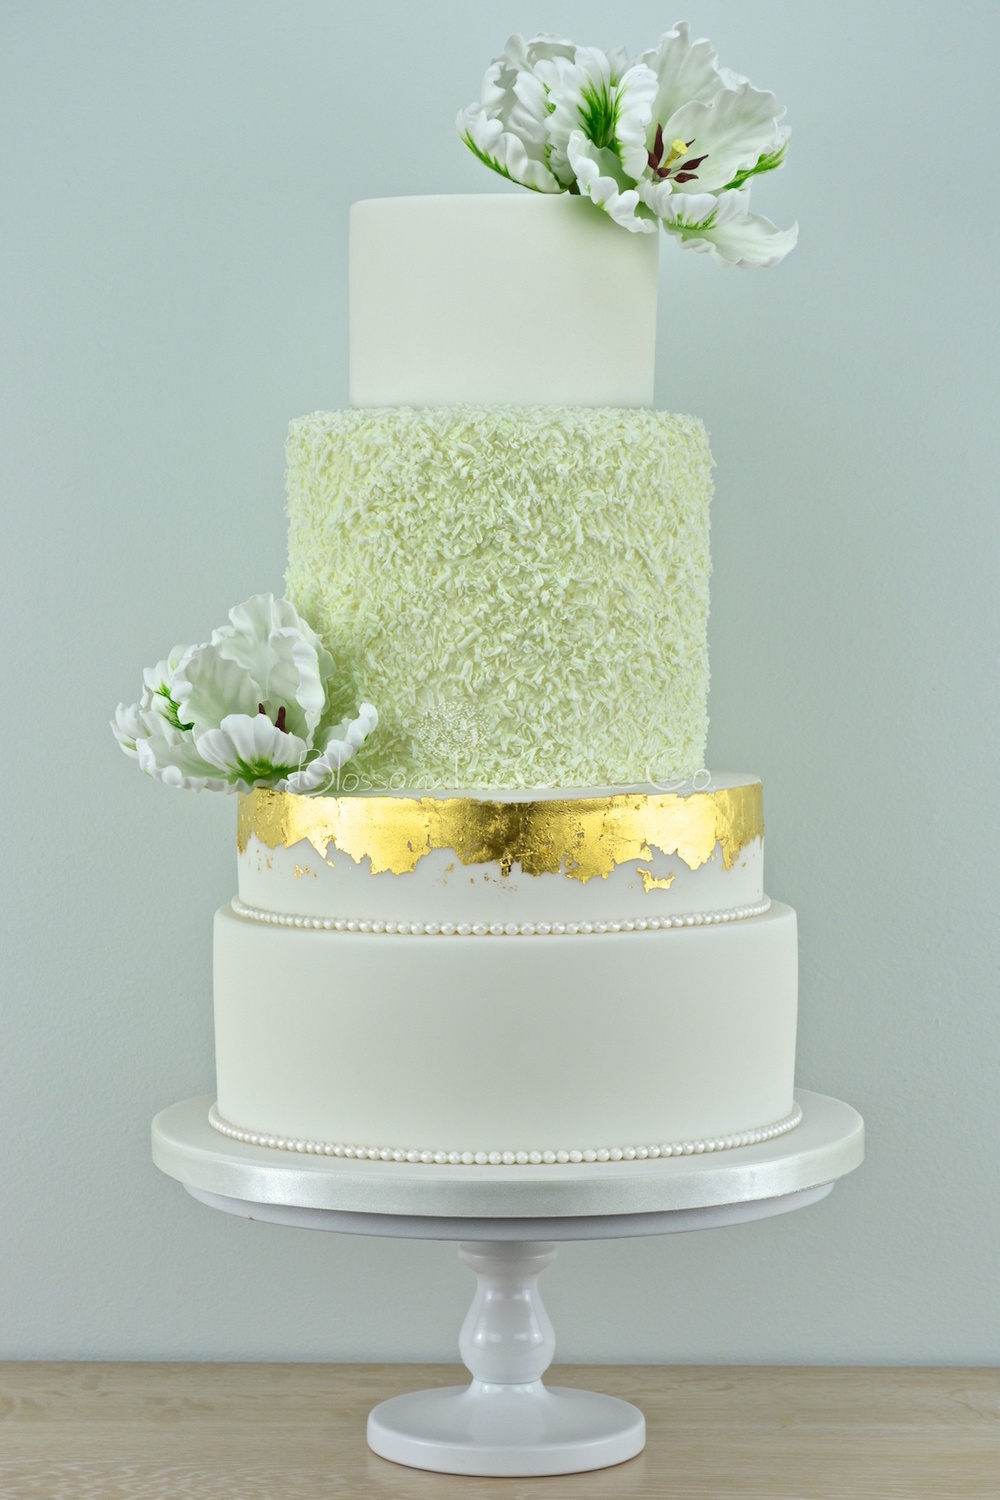 White and Green Parrot Tulips with Gold Leaf by Blossom Tree Cake Co Harrogate North Yorkshire.jpg